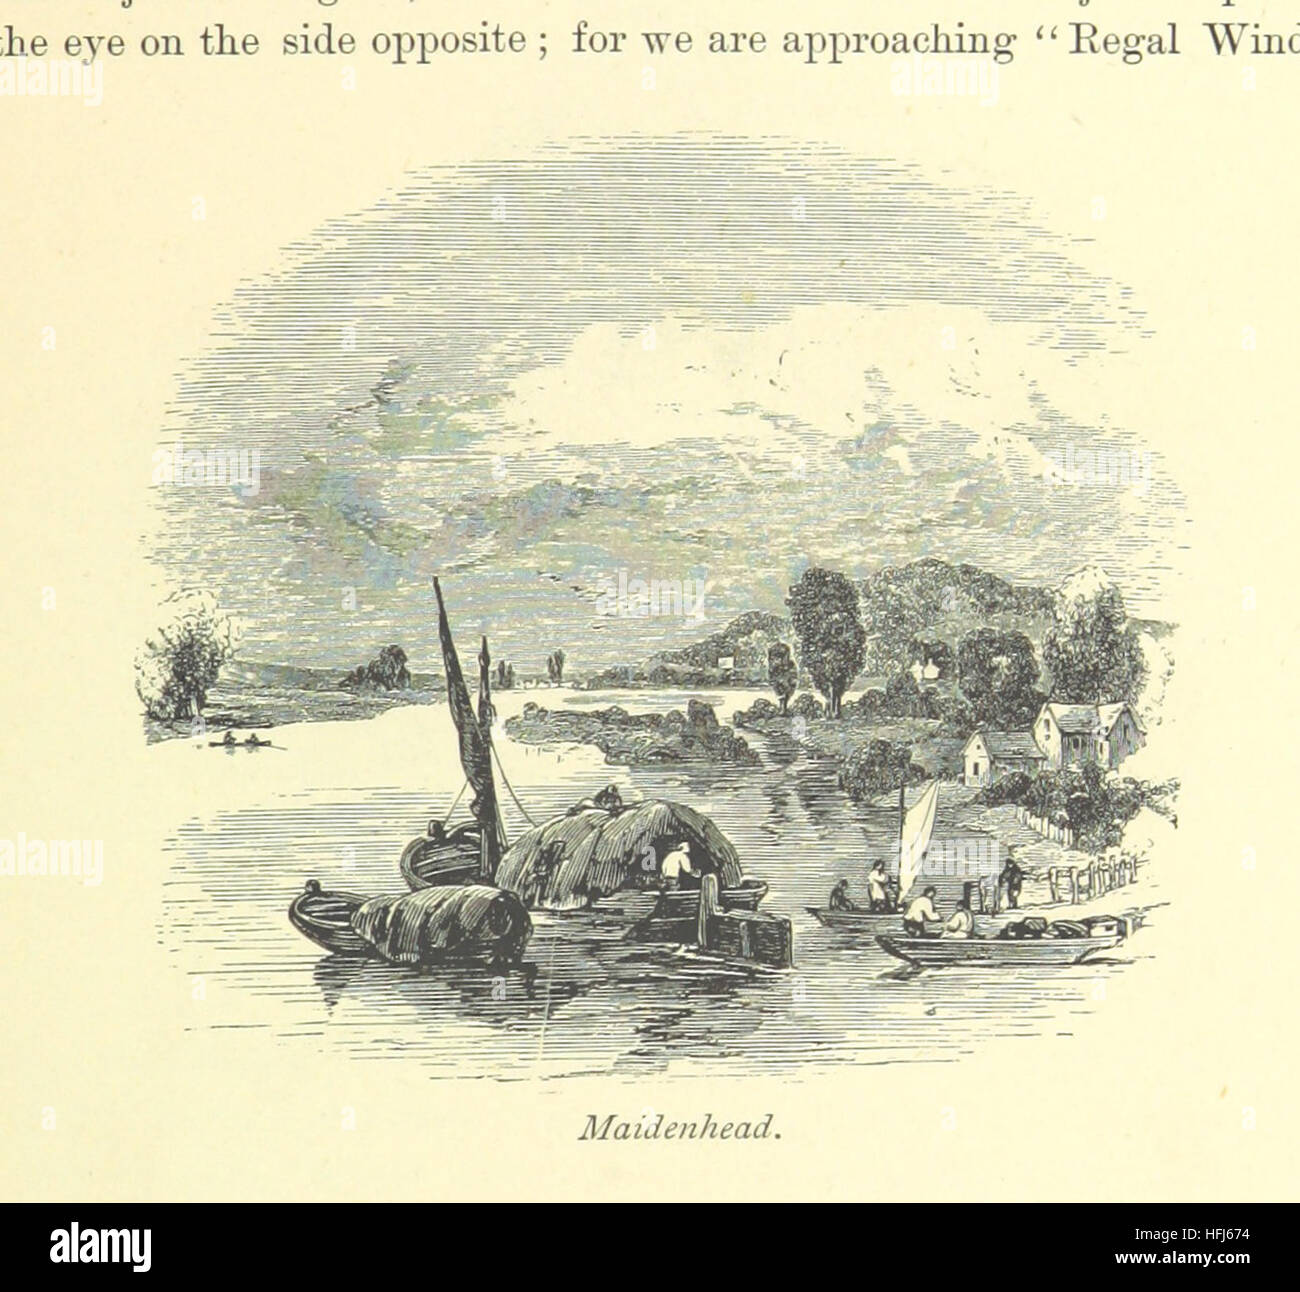 Image taken from page 209 of '[The book of the Thames.]' Image taken from page 209 of '[The book of - Stock Image